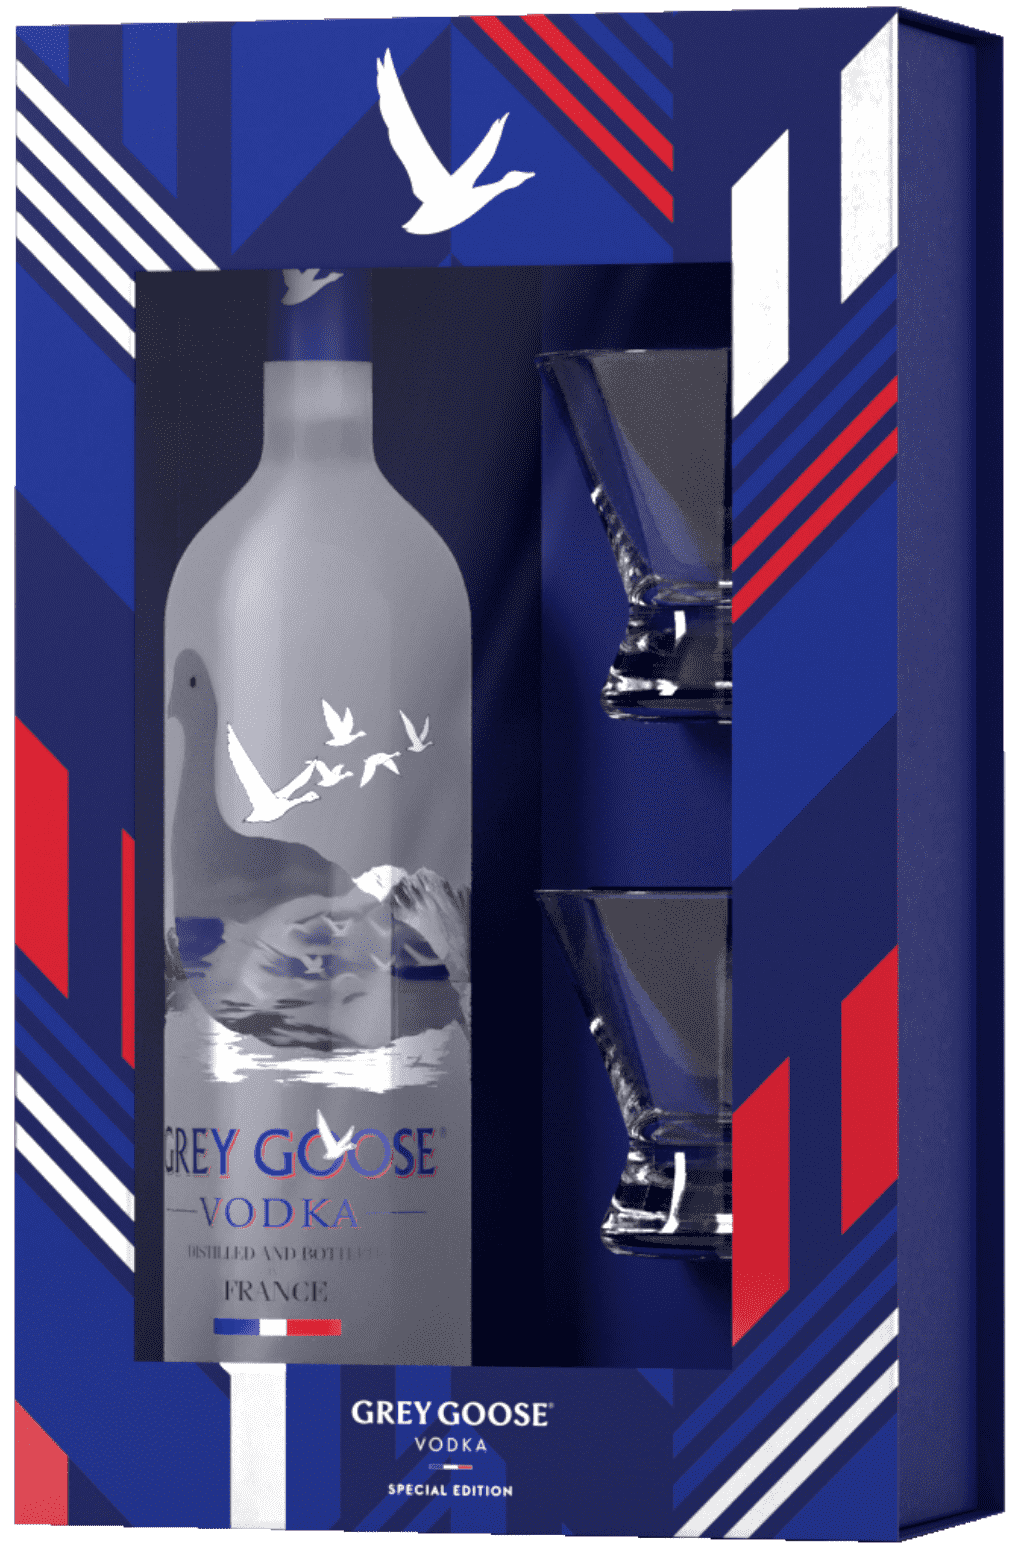 GREY GOOSE® Special Edition Holiday Box Set bottle